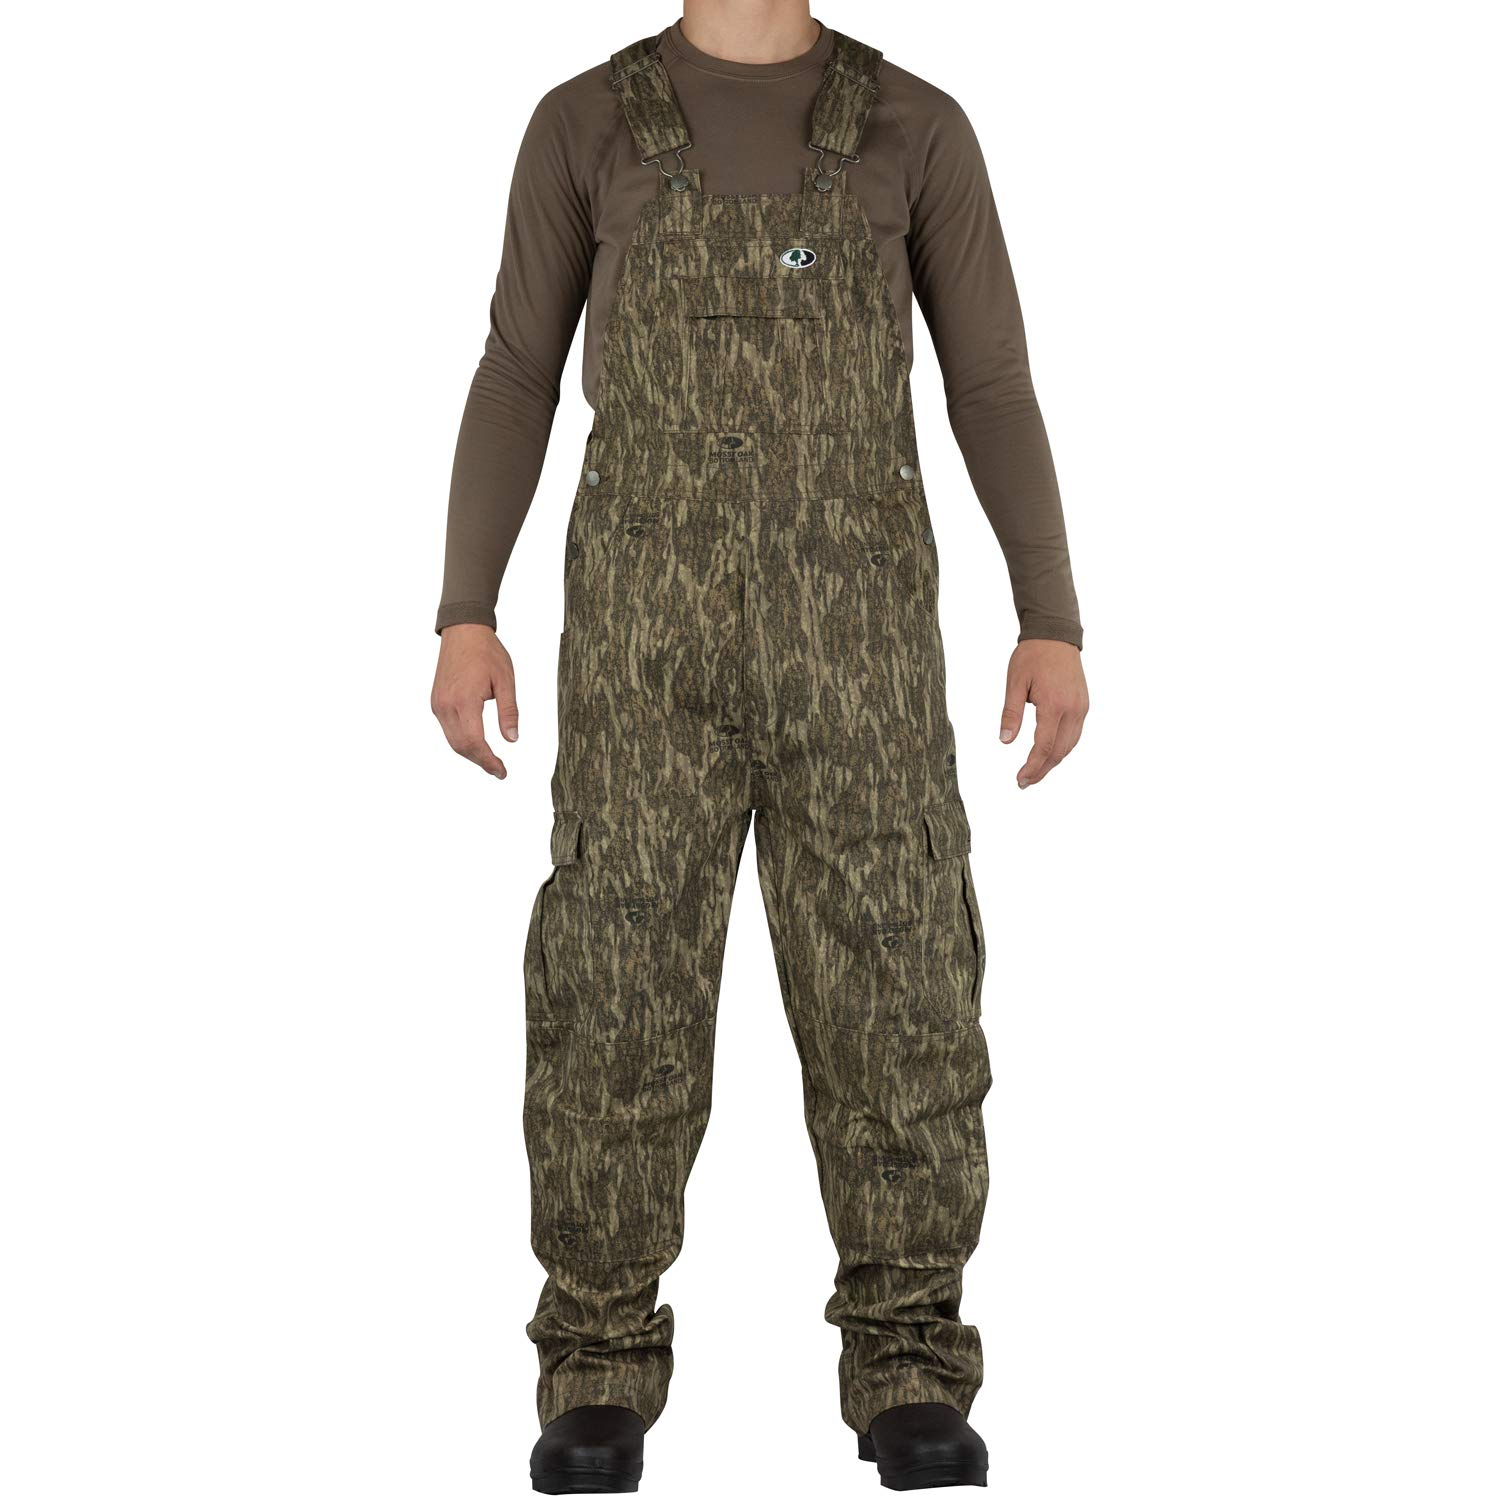 Mossy Oak Men's Mo Cotton Mill 2.0 Hunt Bib, Bottomland, 3X-Large by Mossy Oak (Image #1)